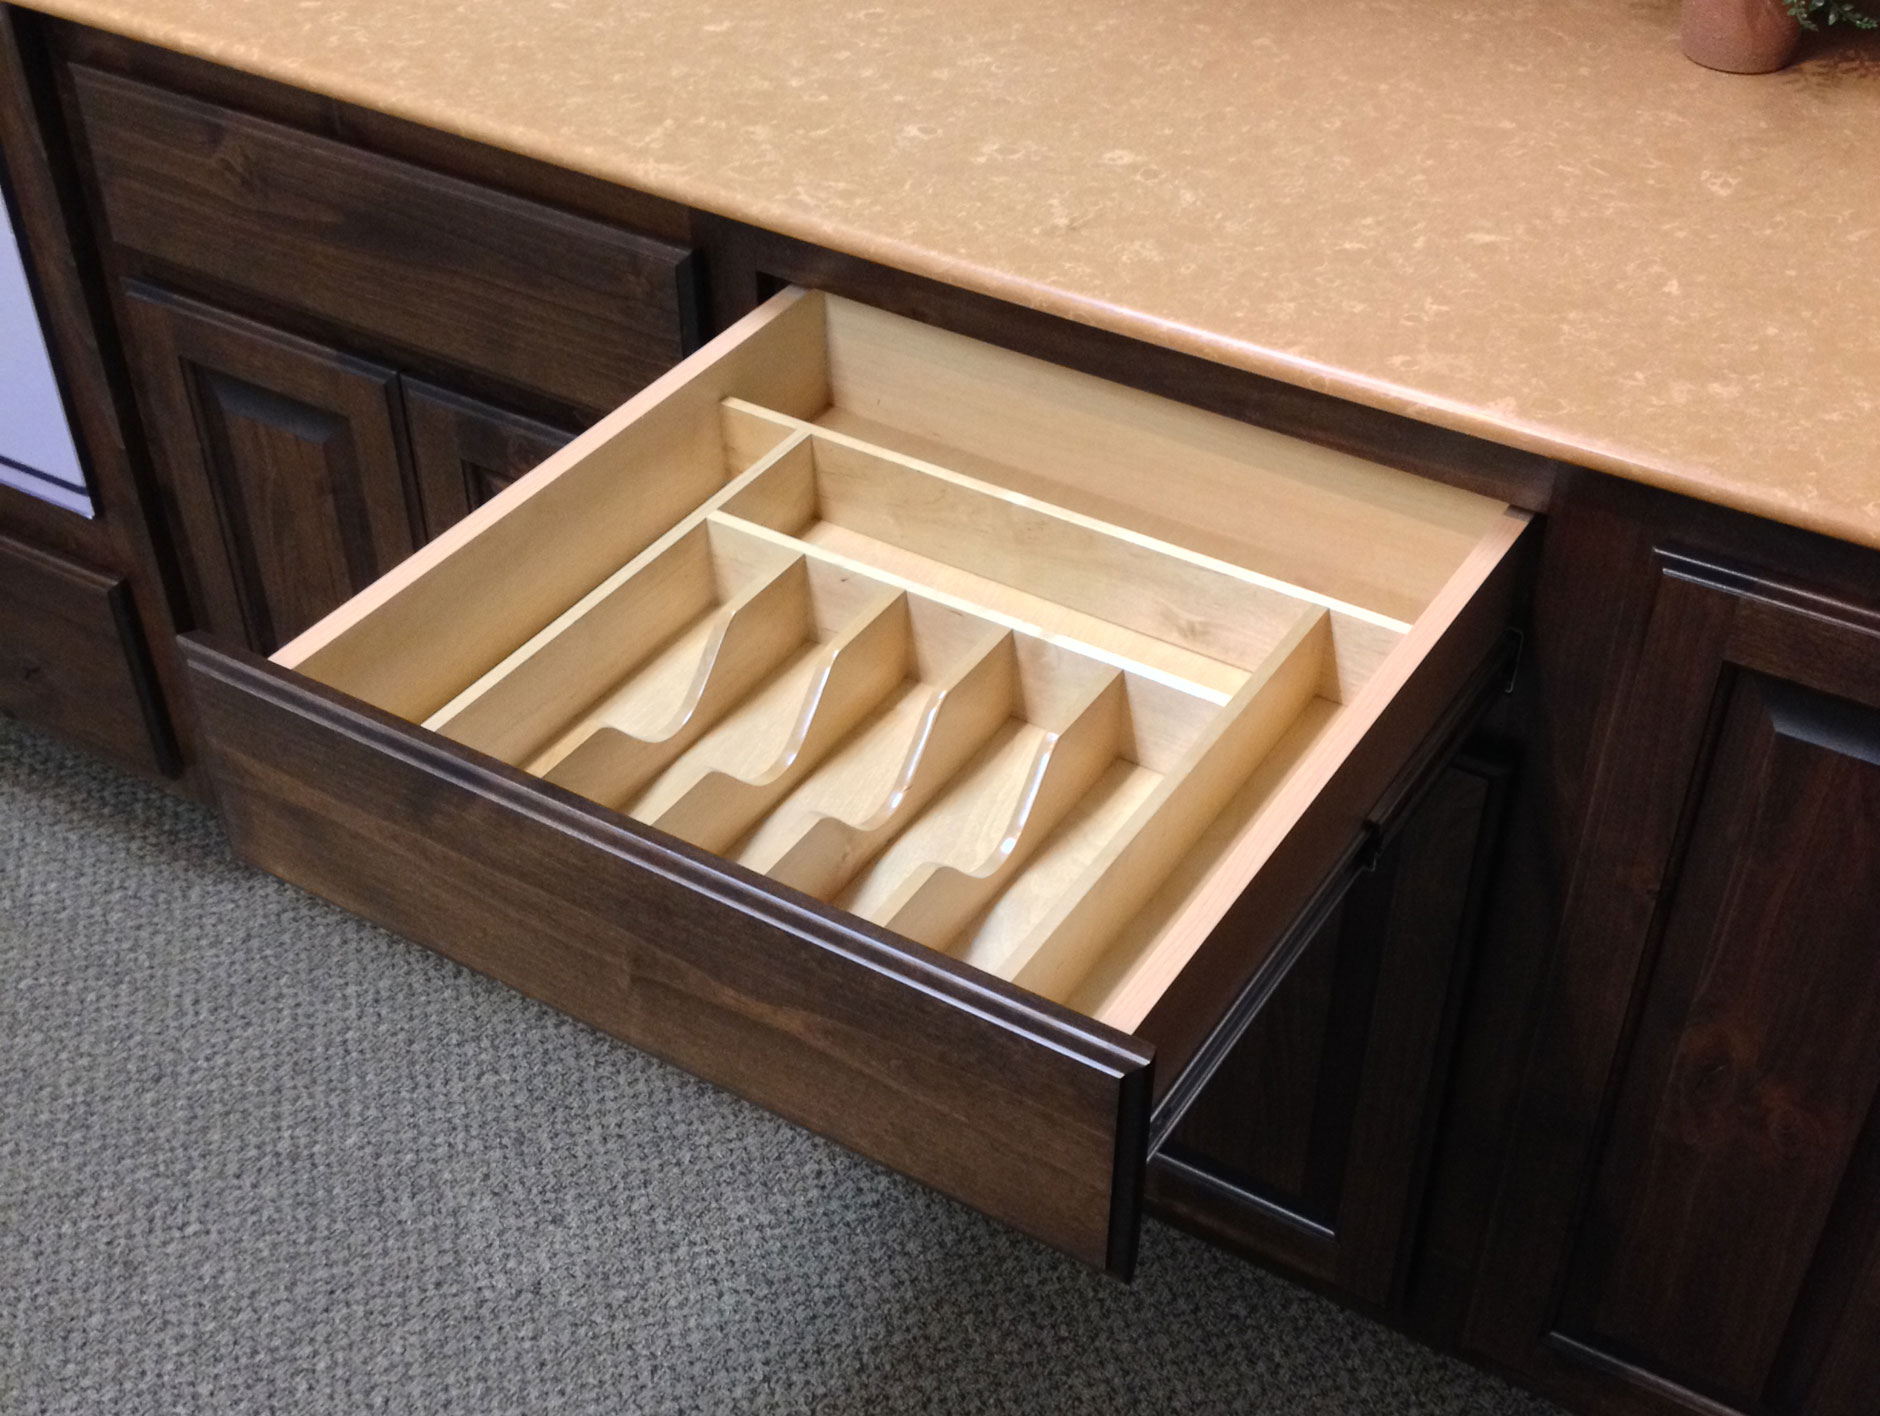 Silverware and cutlery drawer insert burrows cabinets for Silverware storage no drawers